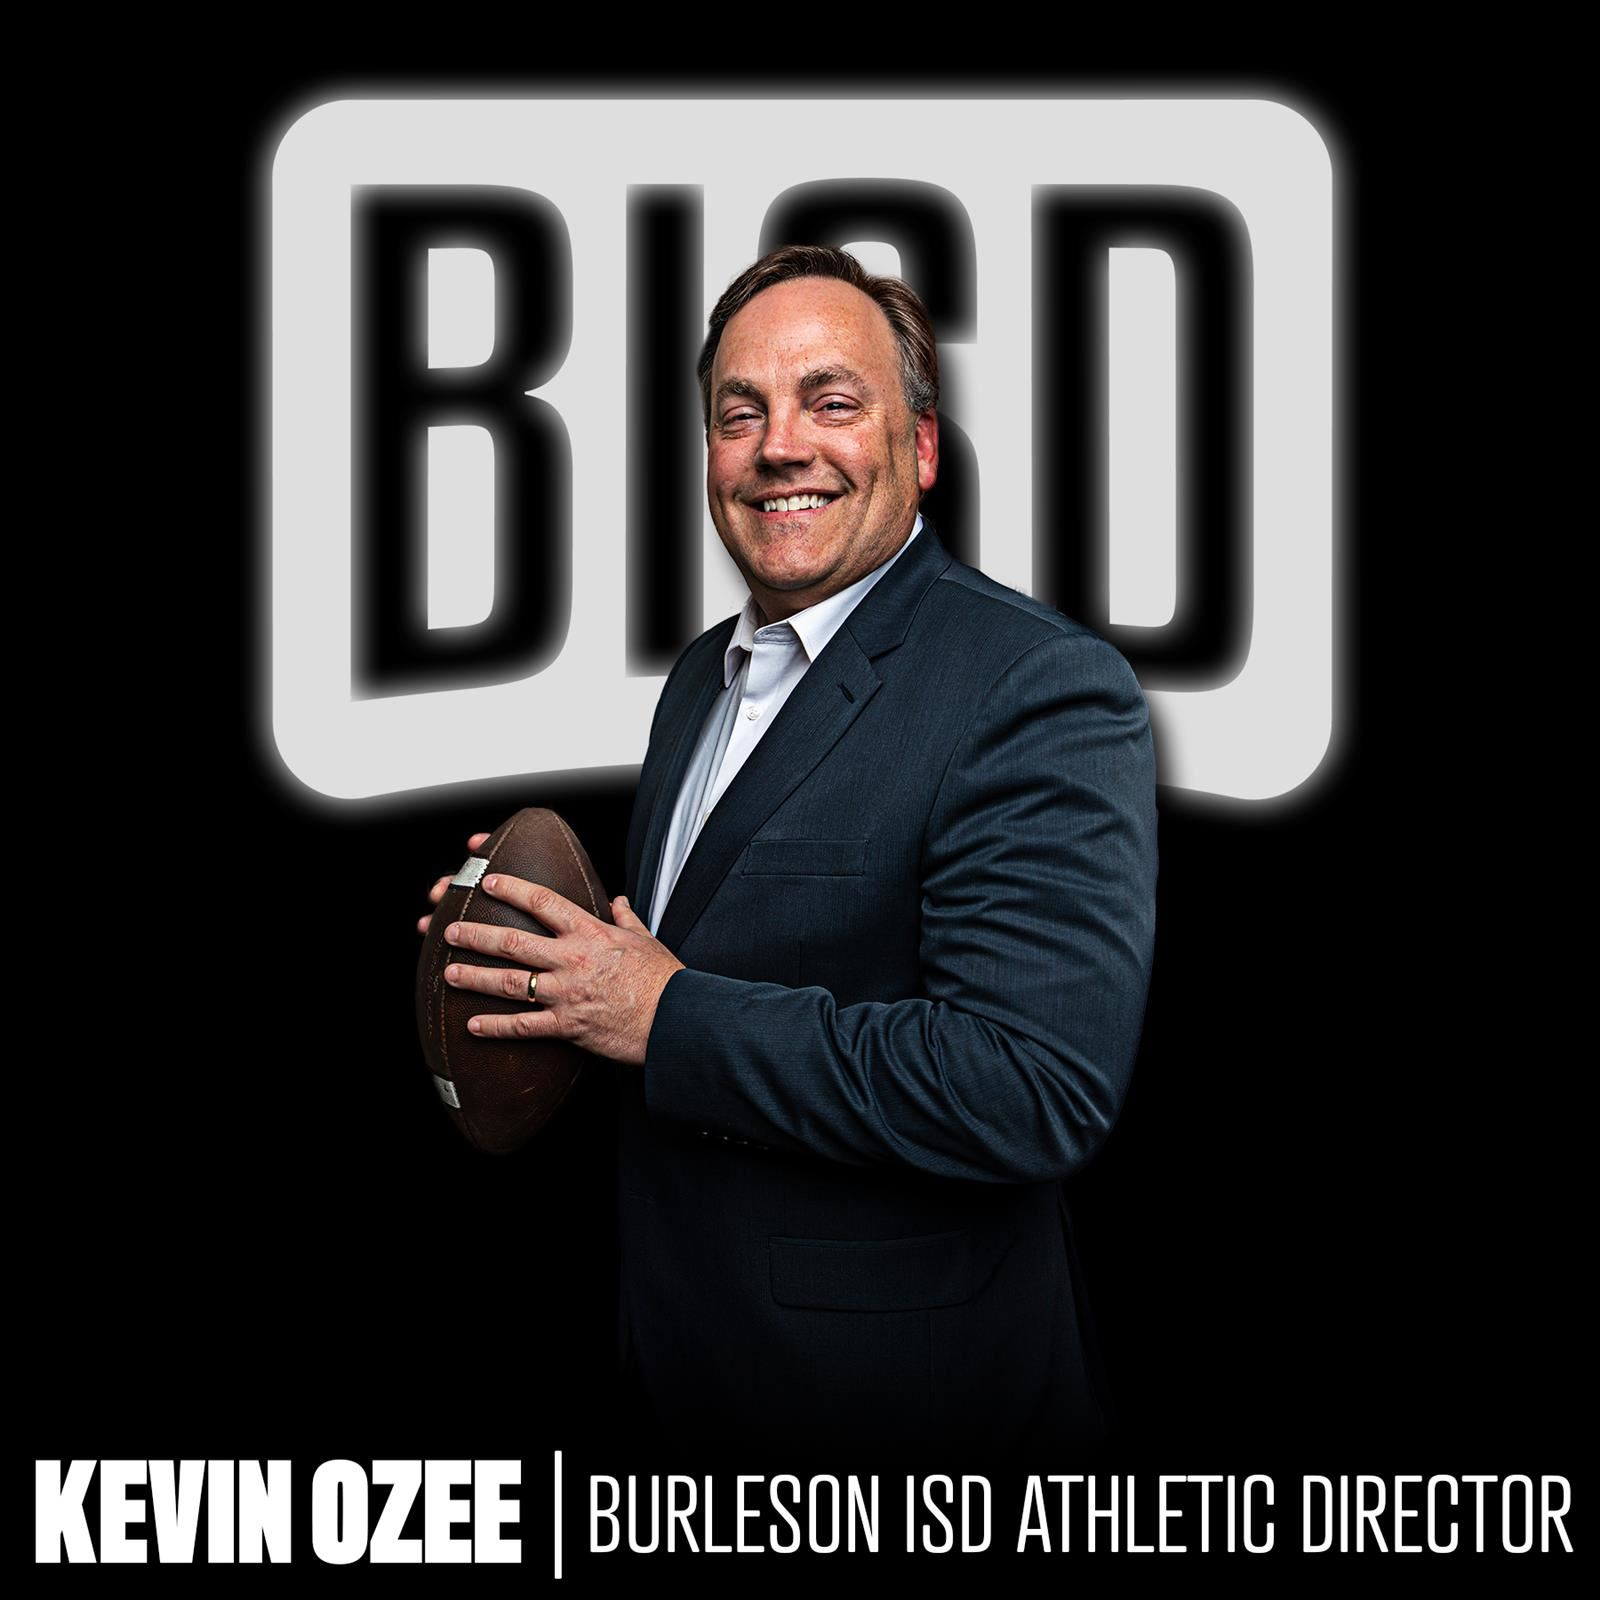 Image of new BISD Athletic Director Kevin Ozee